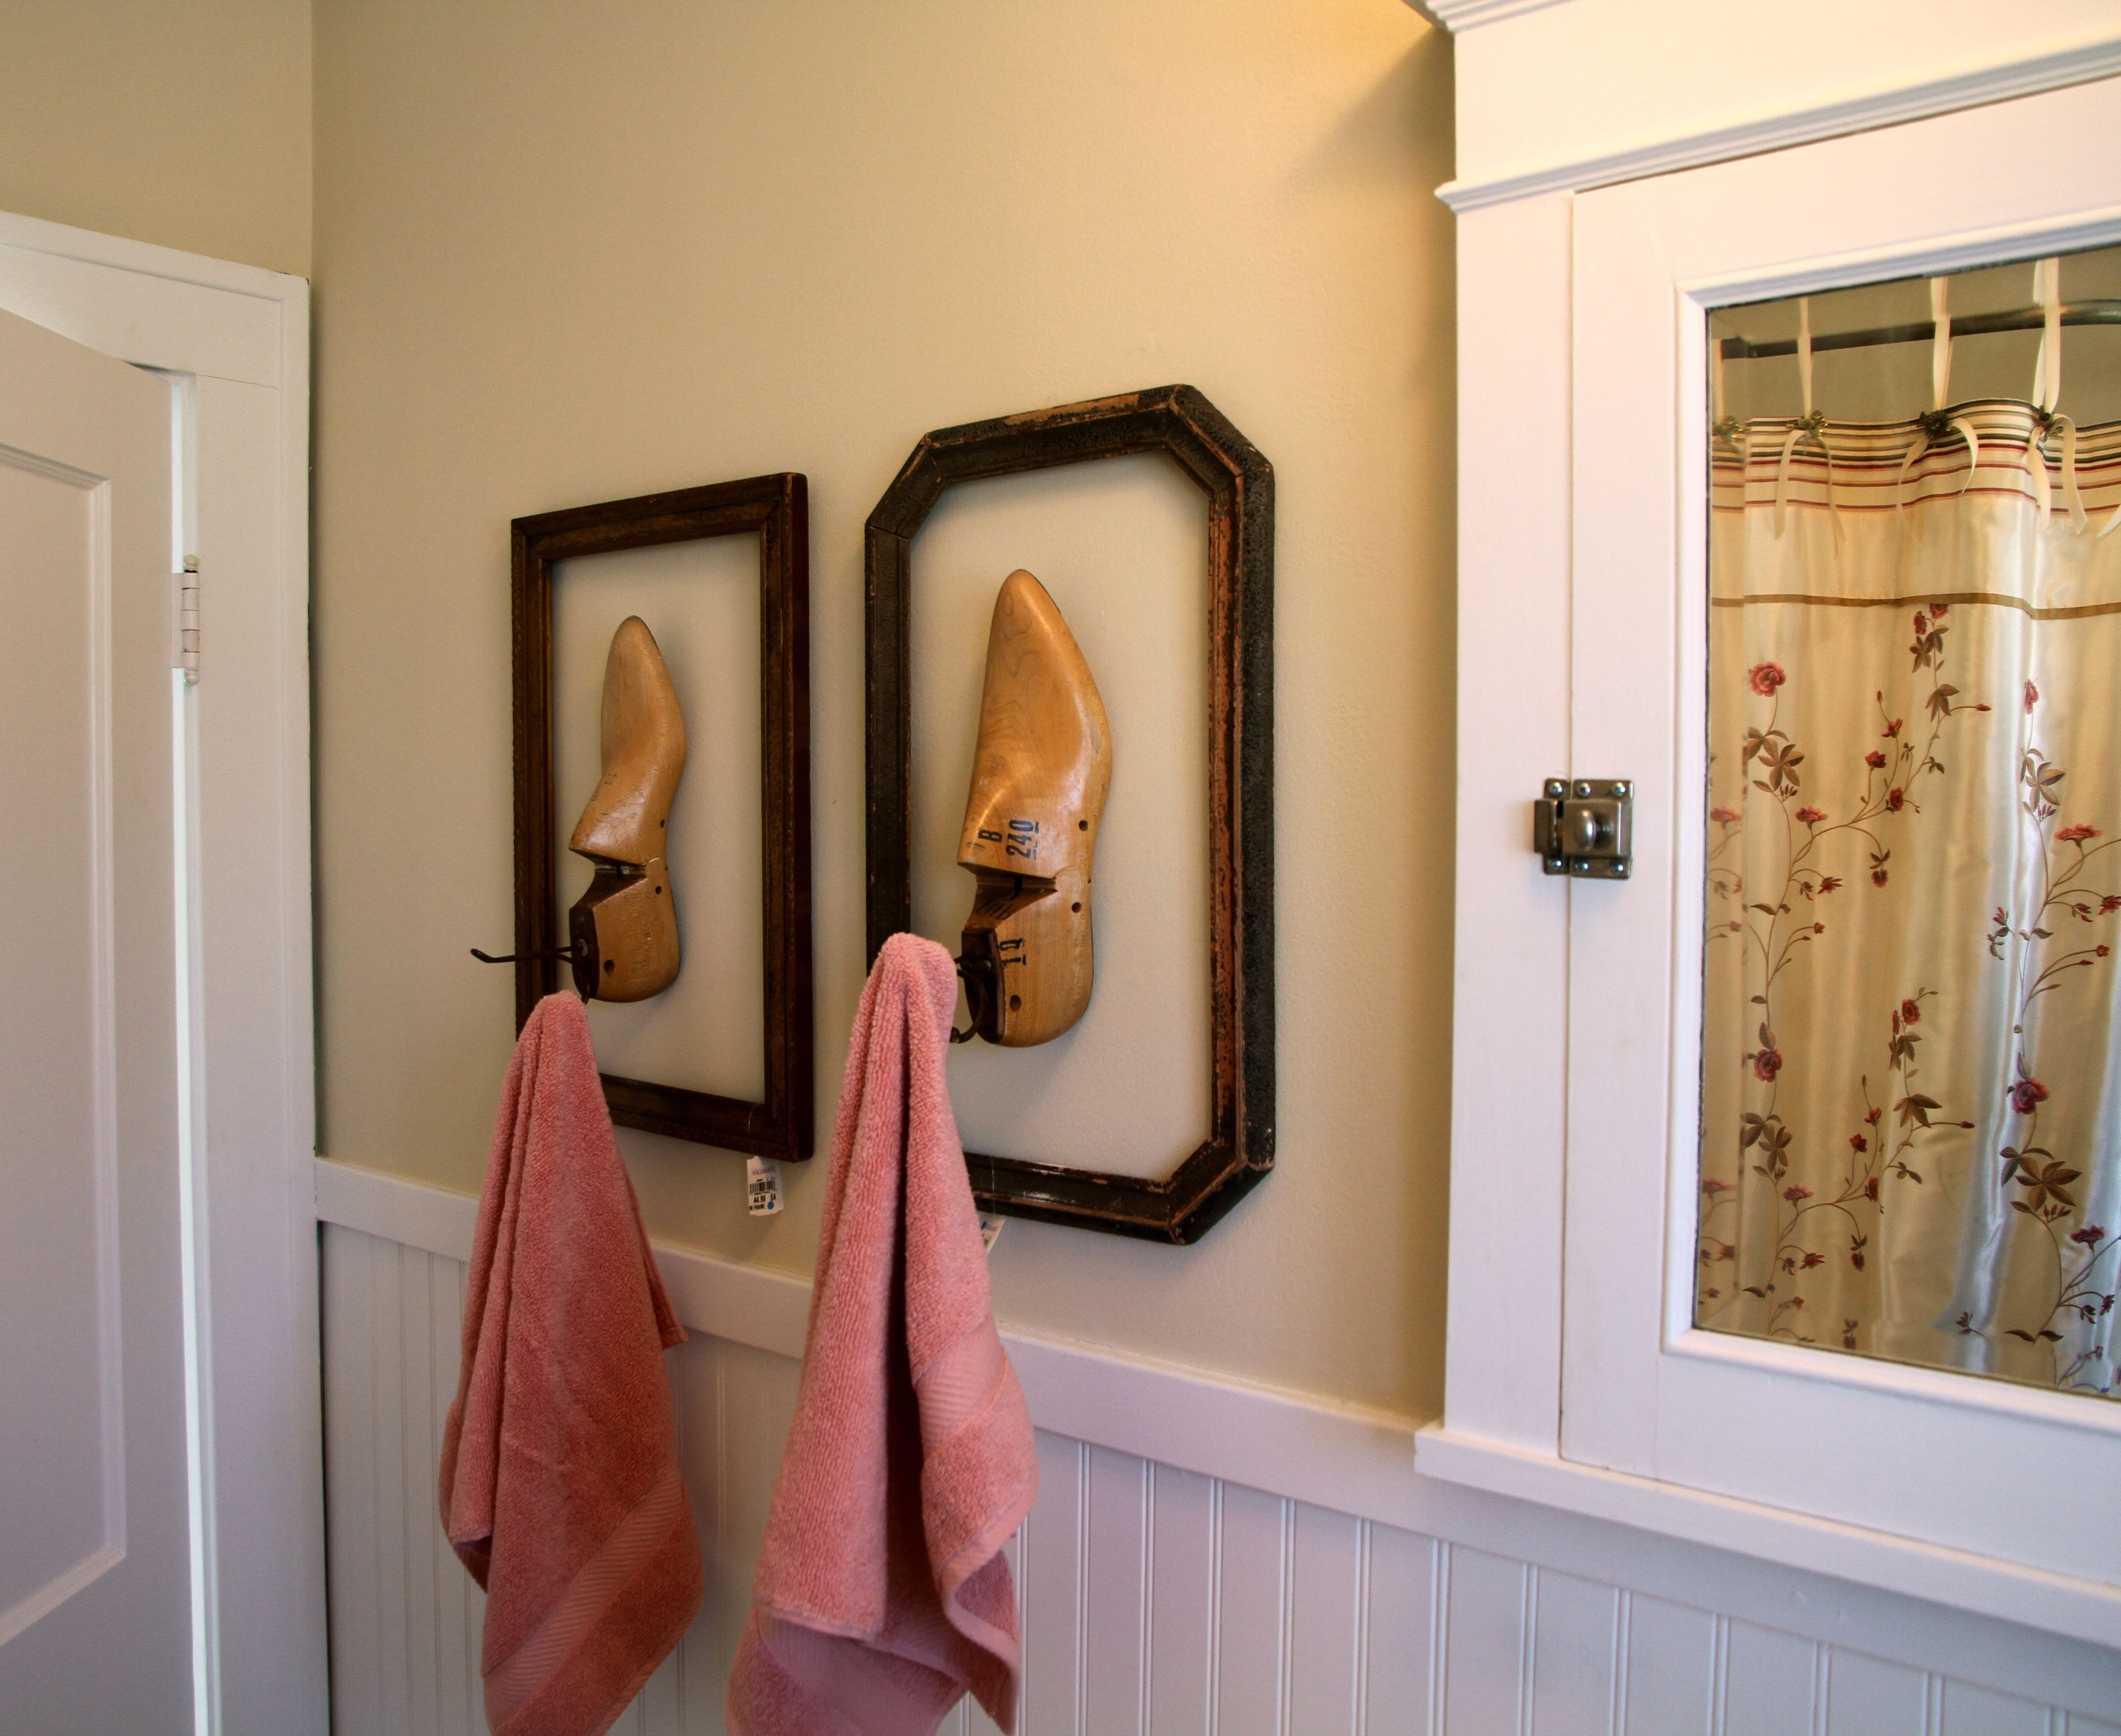 Club Basement Ideas Painting bathroom paint is hirshfield's 0278 barberry sand  bachman's